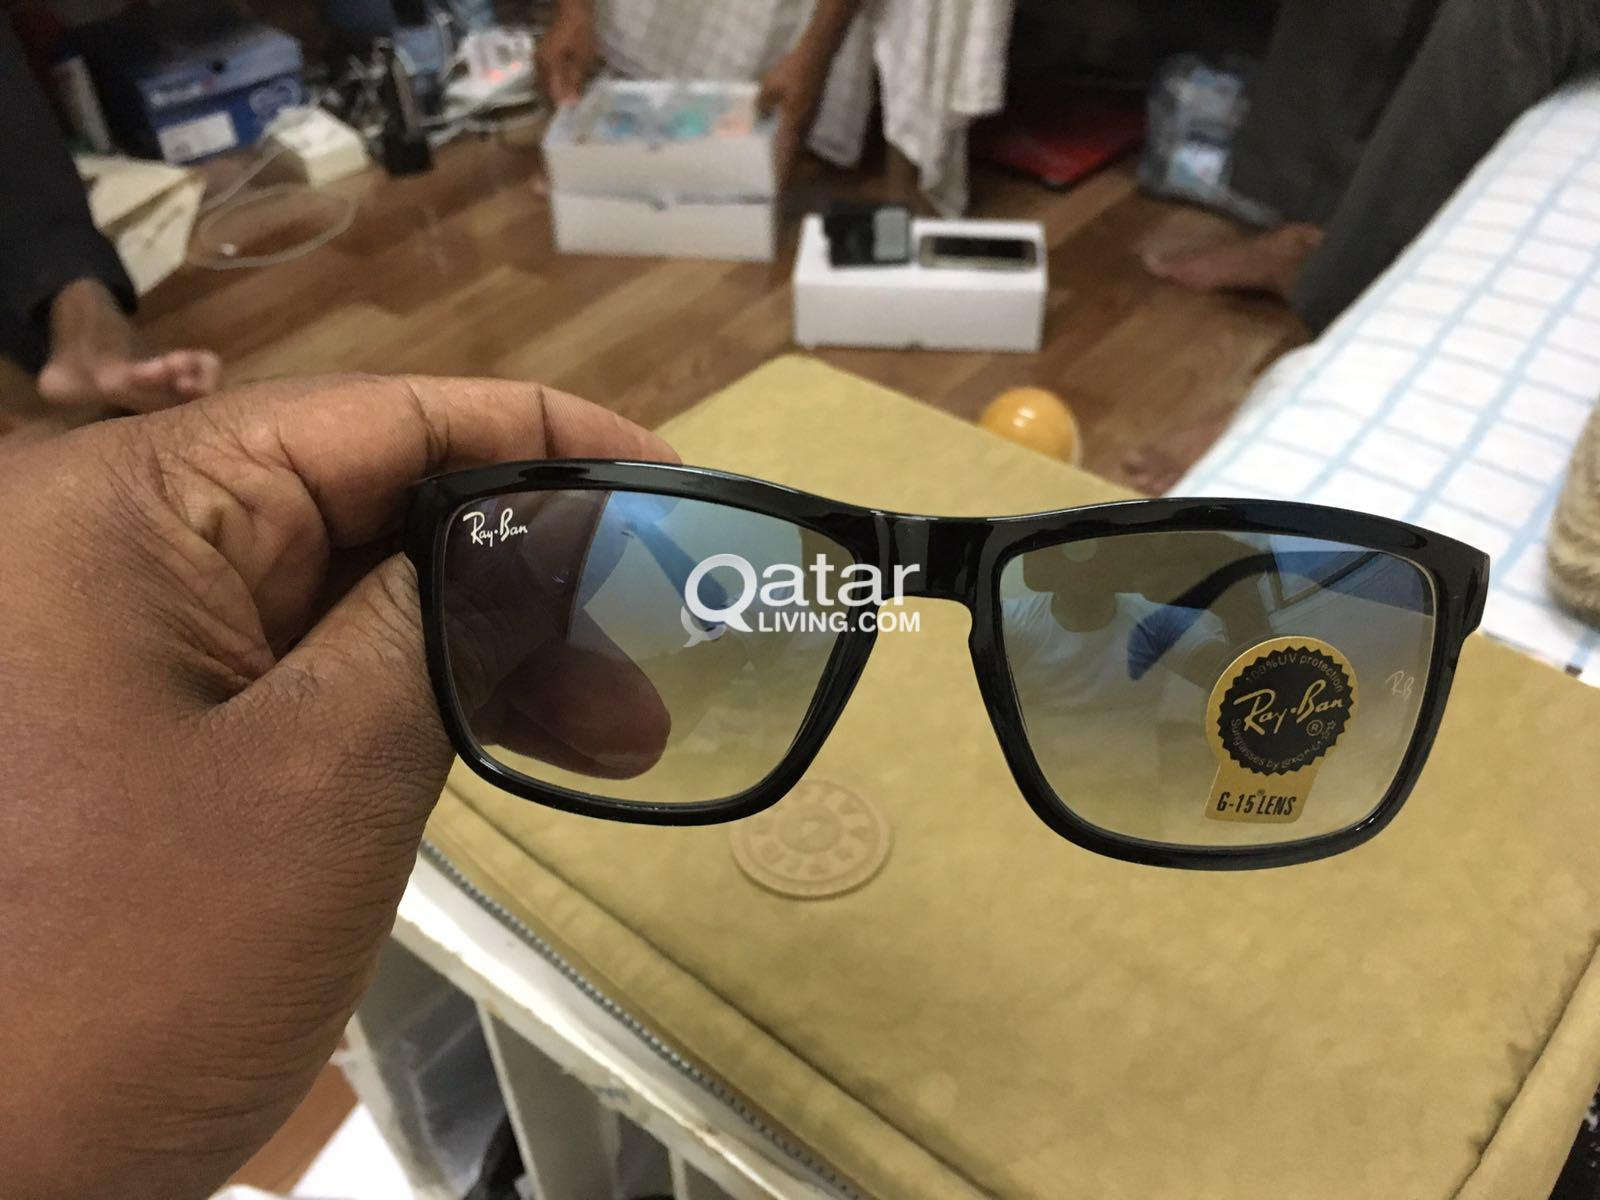 9a25d3f987d7ff ... Ban Sunglasses Are Fake Step 6 title · title · title · title · title ·  title · title. Information.